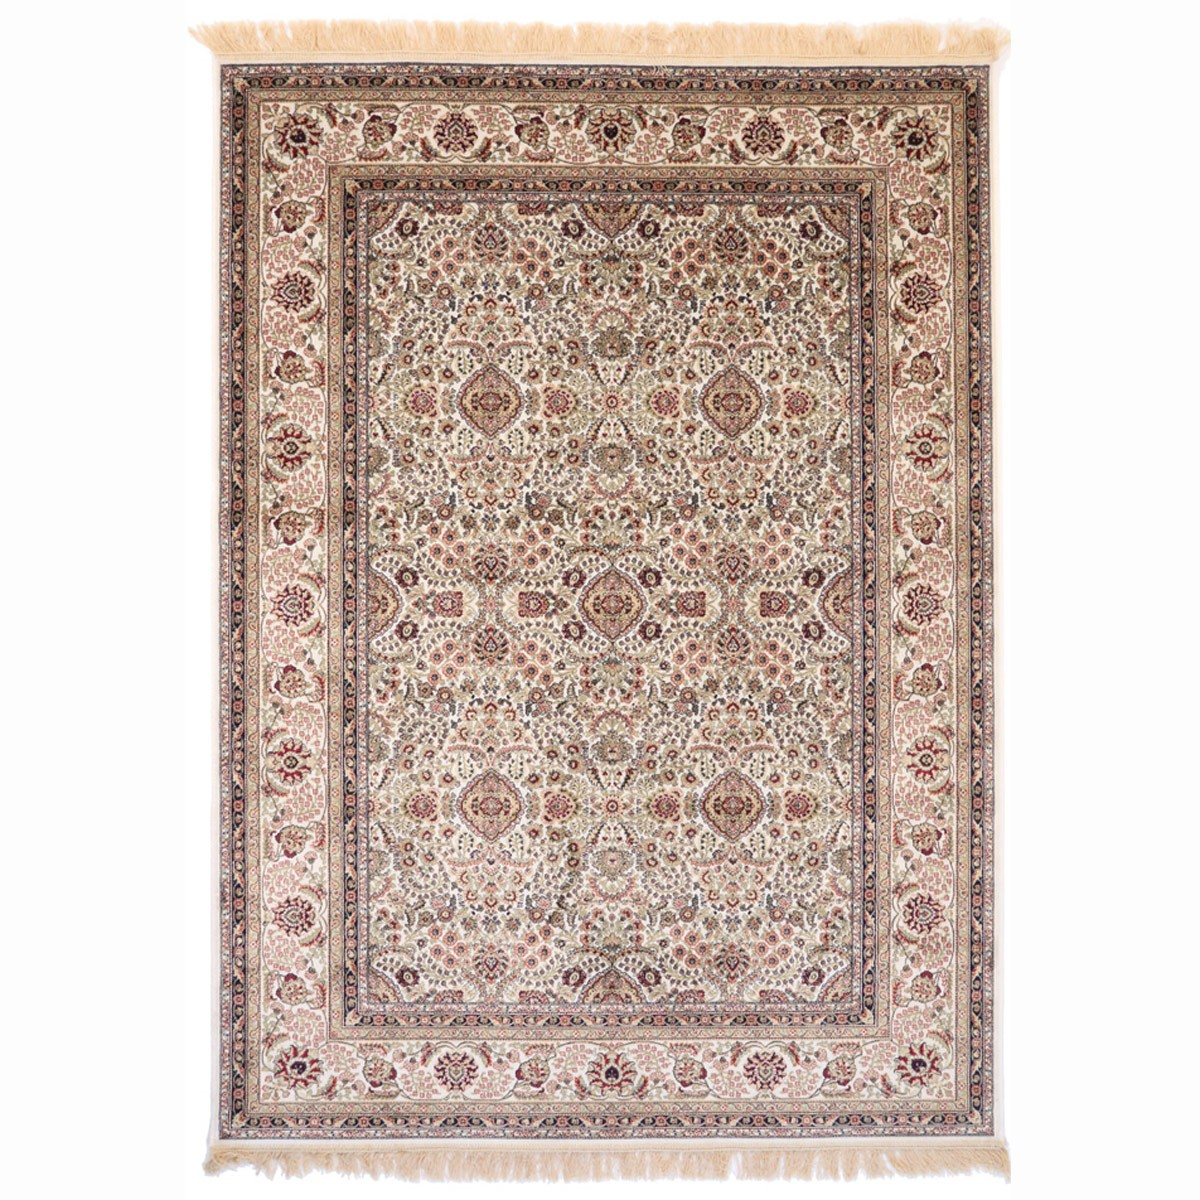 Χαλί Διαδρόμου (67x140) Royal Carpets Rubine 476 Ivory